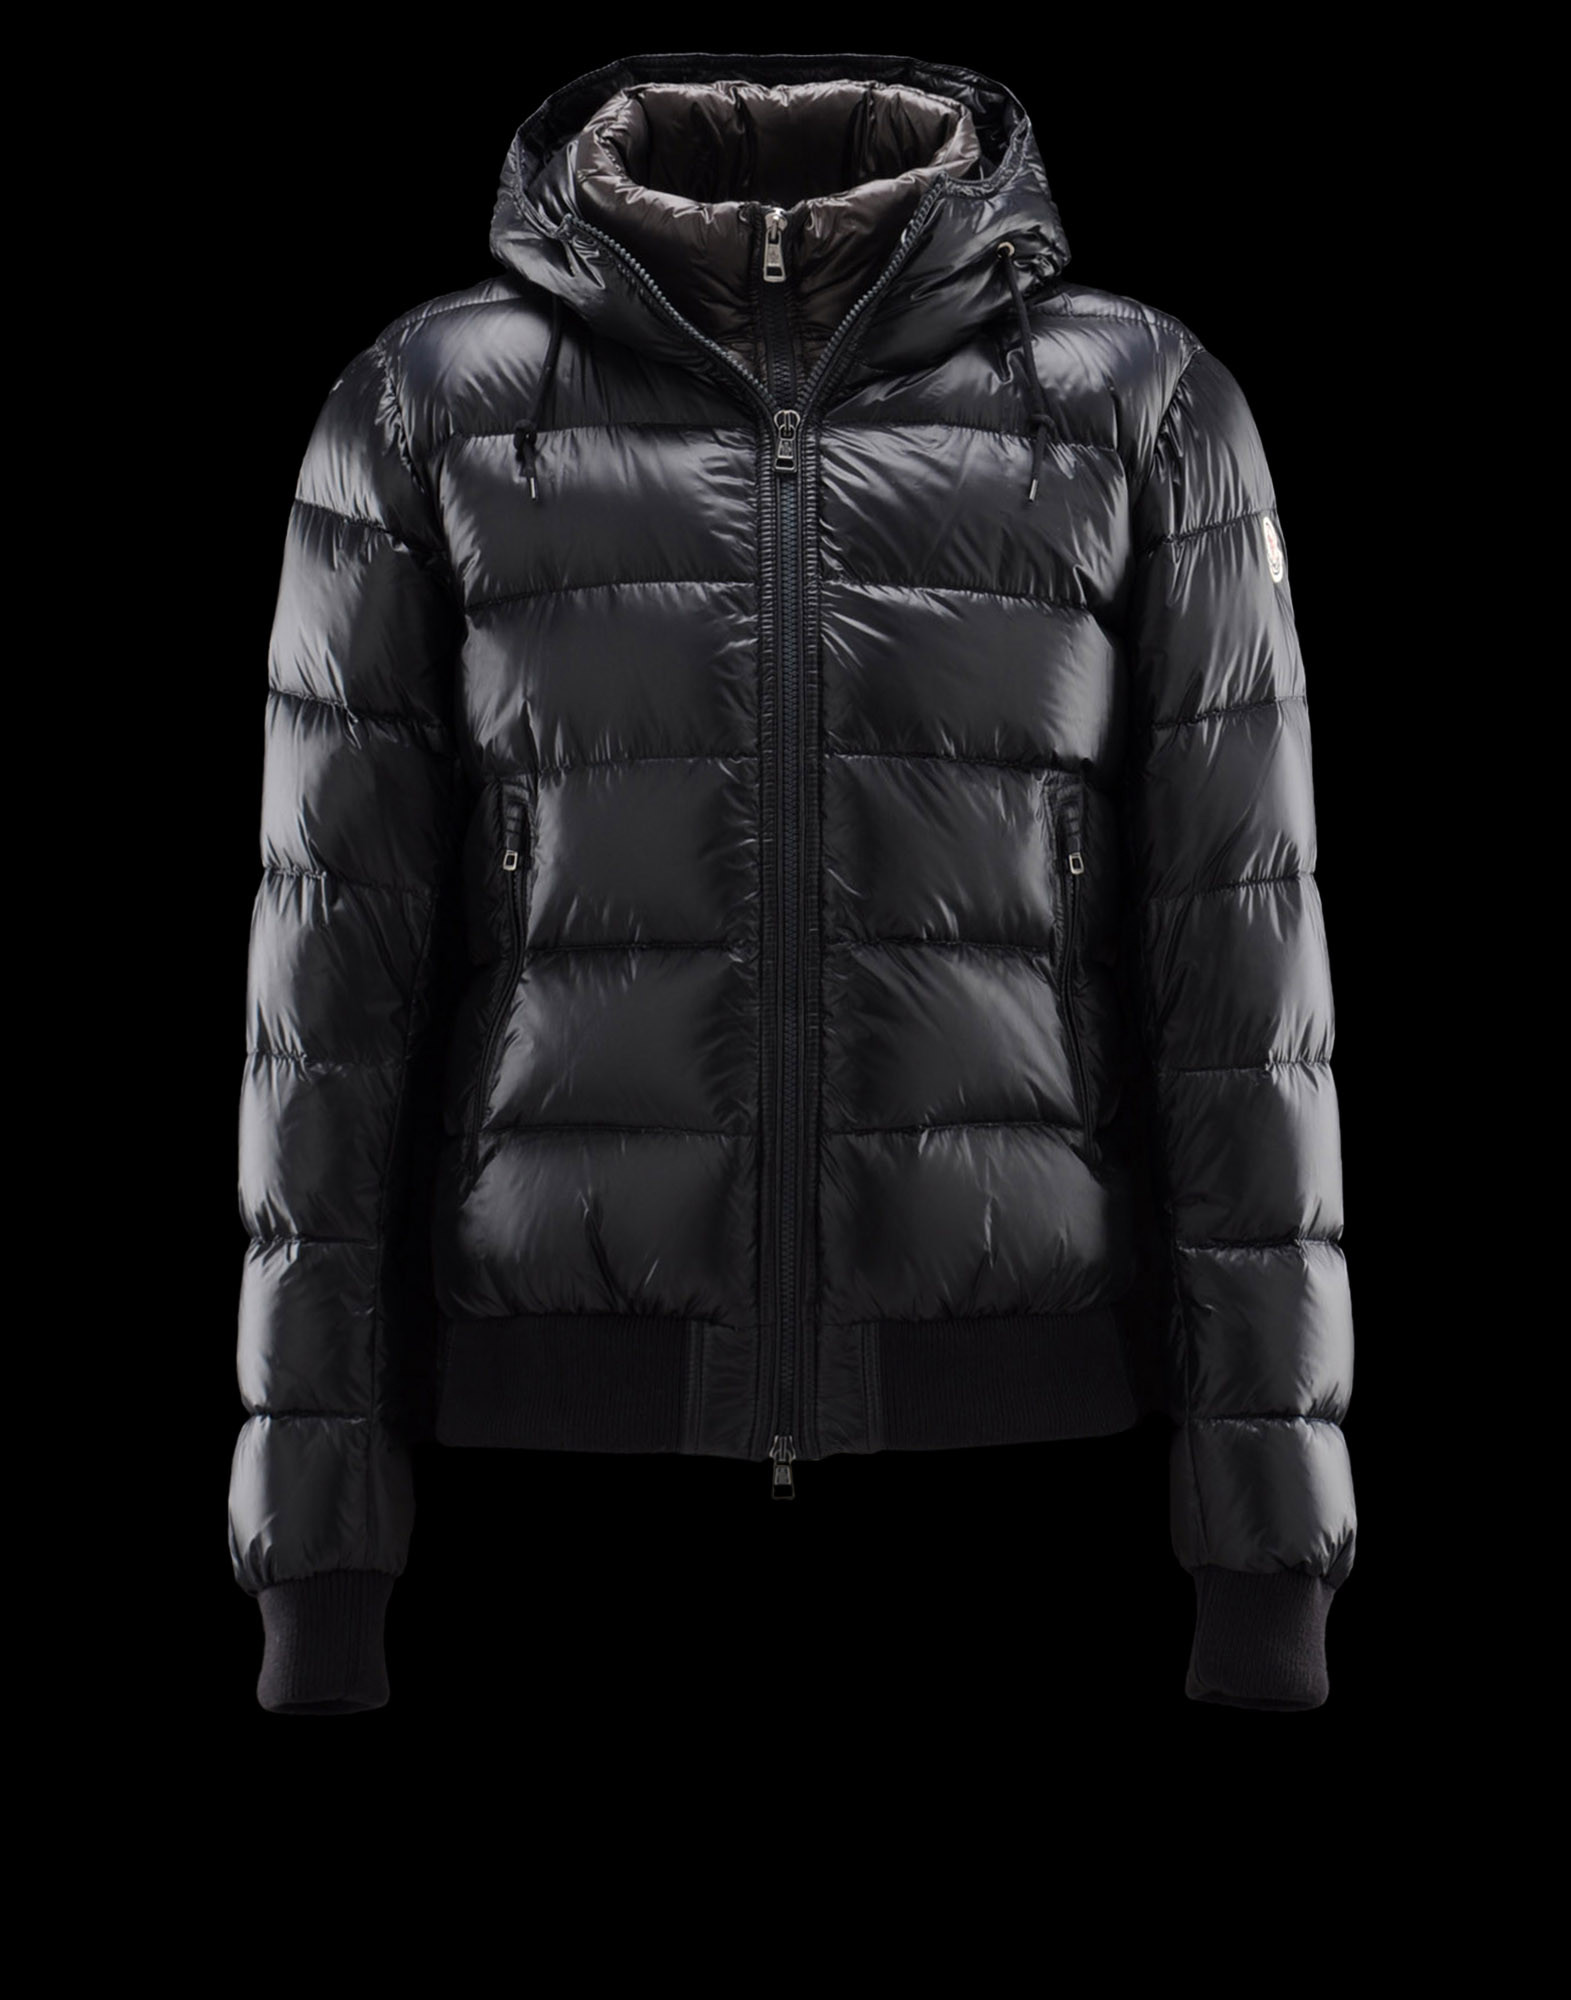 825362 Moncler Outlet Orlando Moncler Store Moncler Jacket For Women  - Outlet